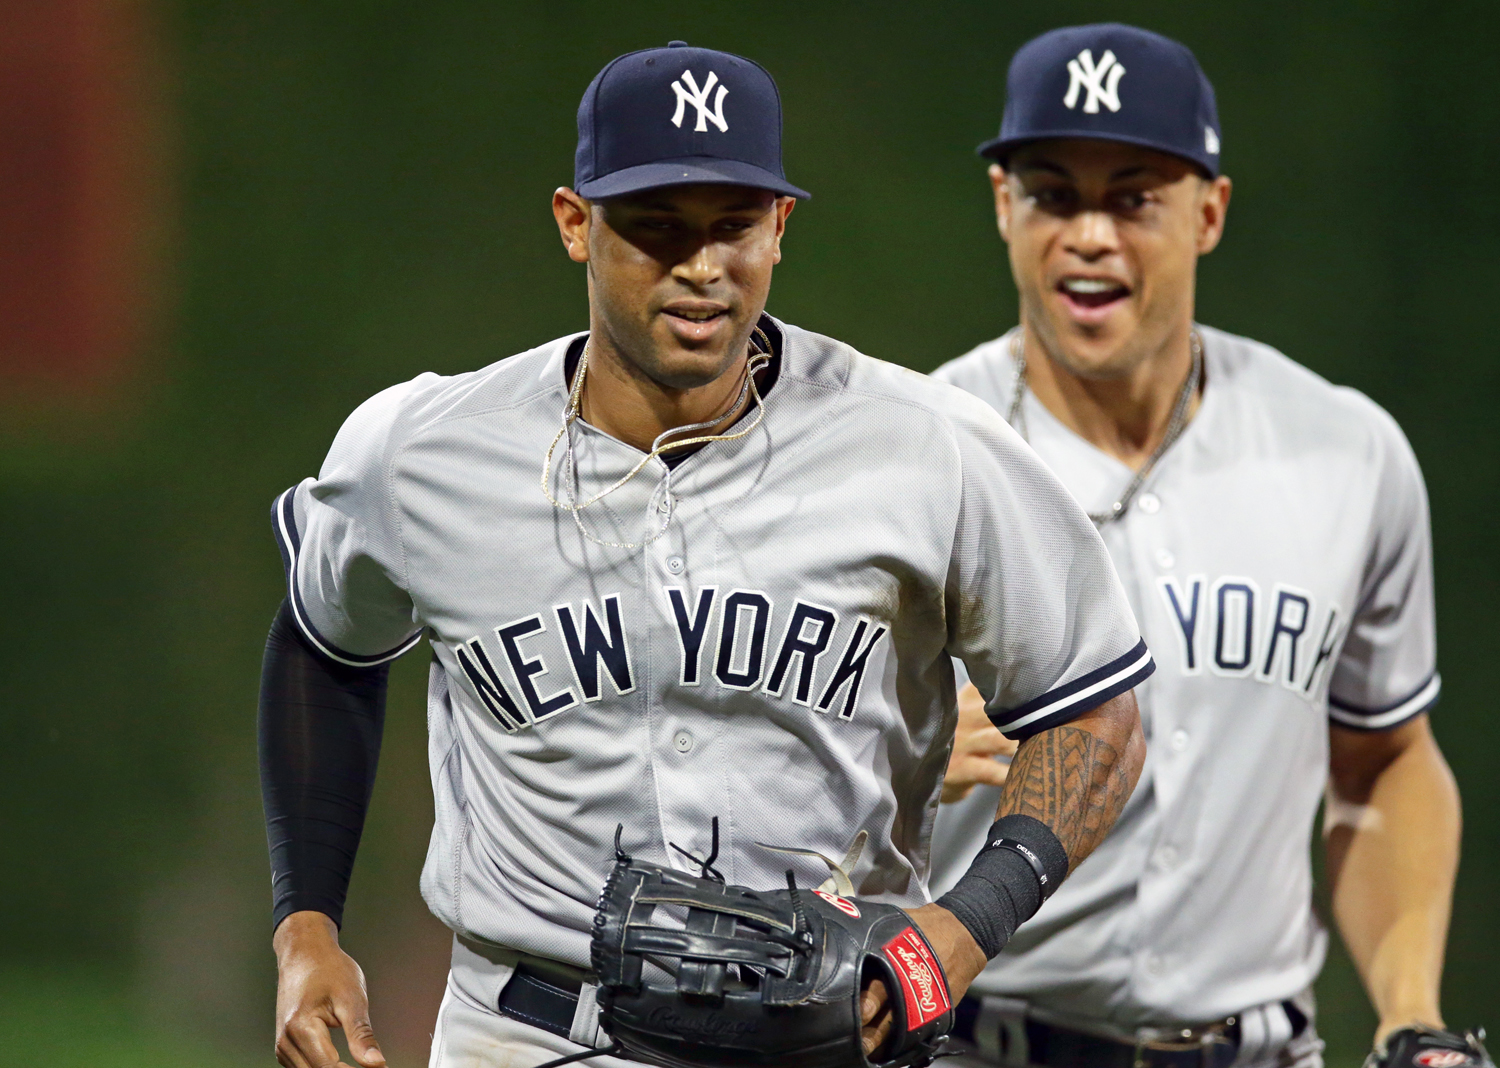 Aaron Hicks and Aaron Judge will put the Yankees at a significant advantage if both are fully healthy for the abbreviated 2020 season. | Hunter Martin/Getty Images